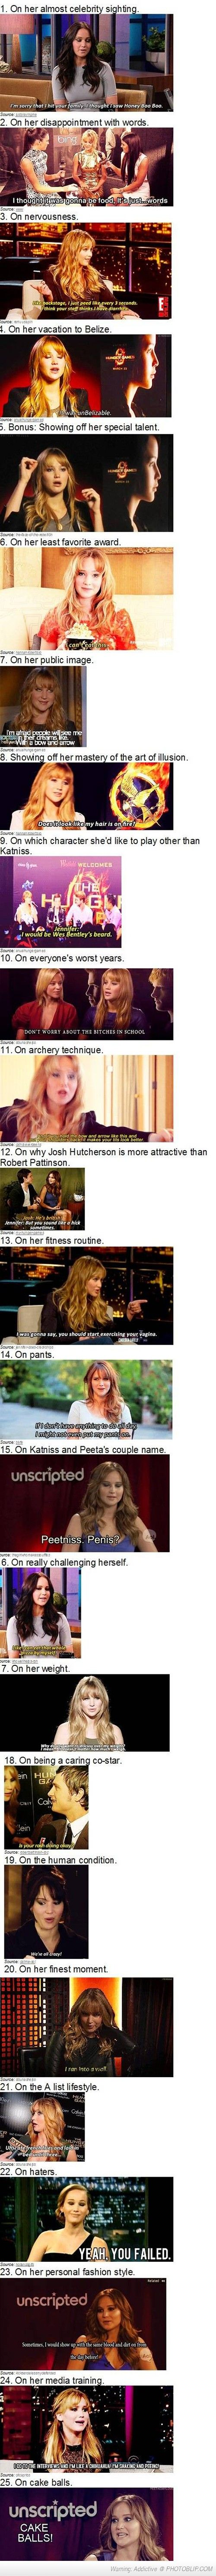 The Best Of Jennifer Lawrence Quotes